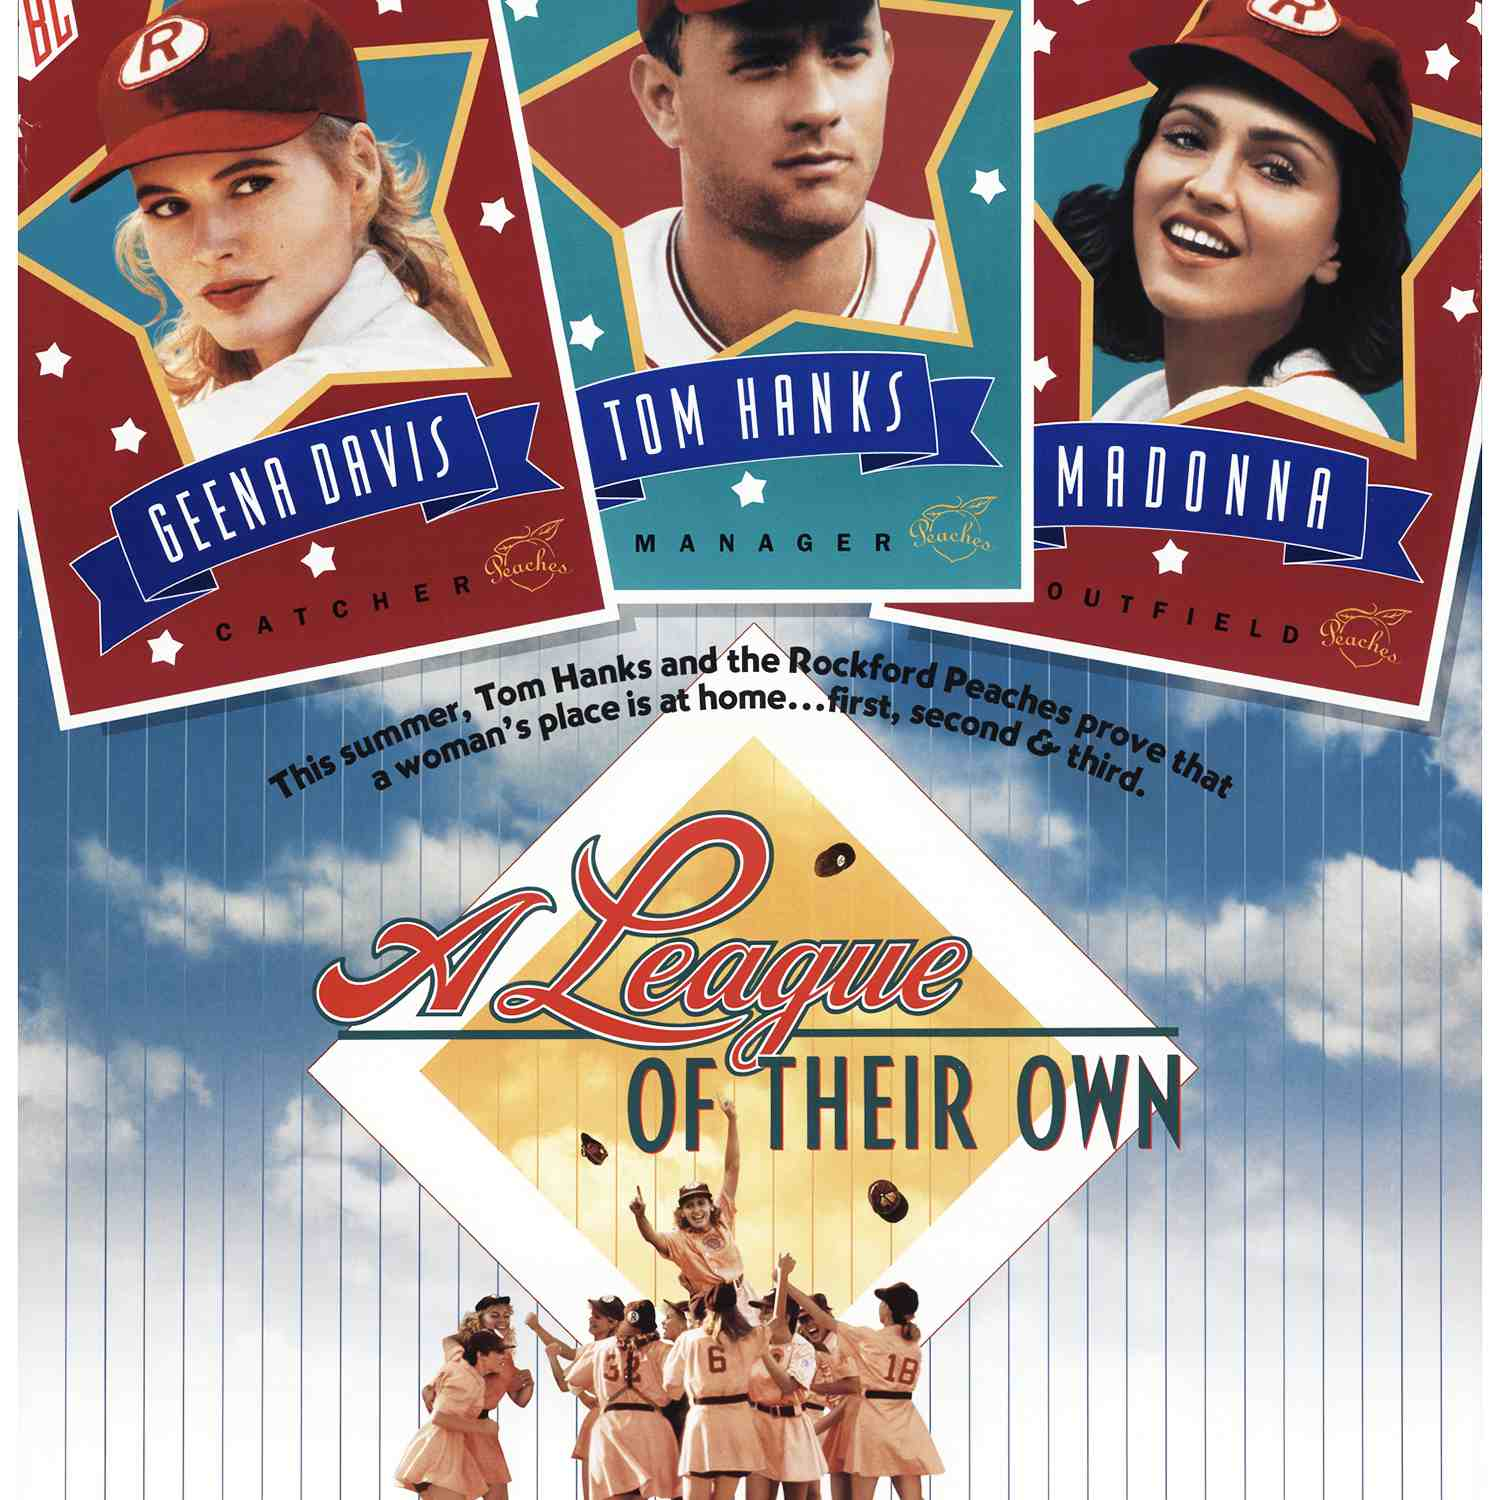 Promotional image for the film A League of Their Own